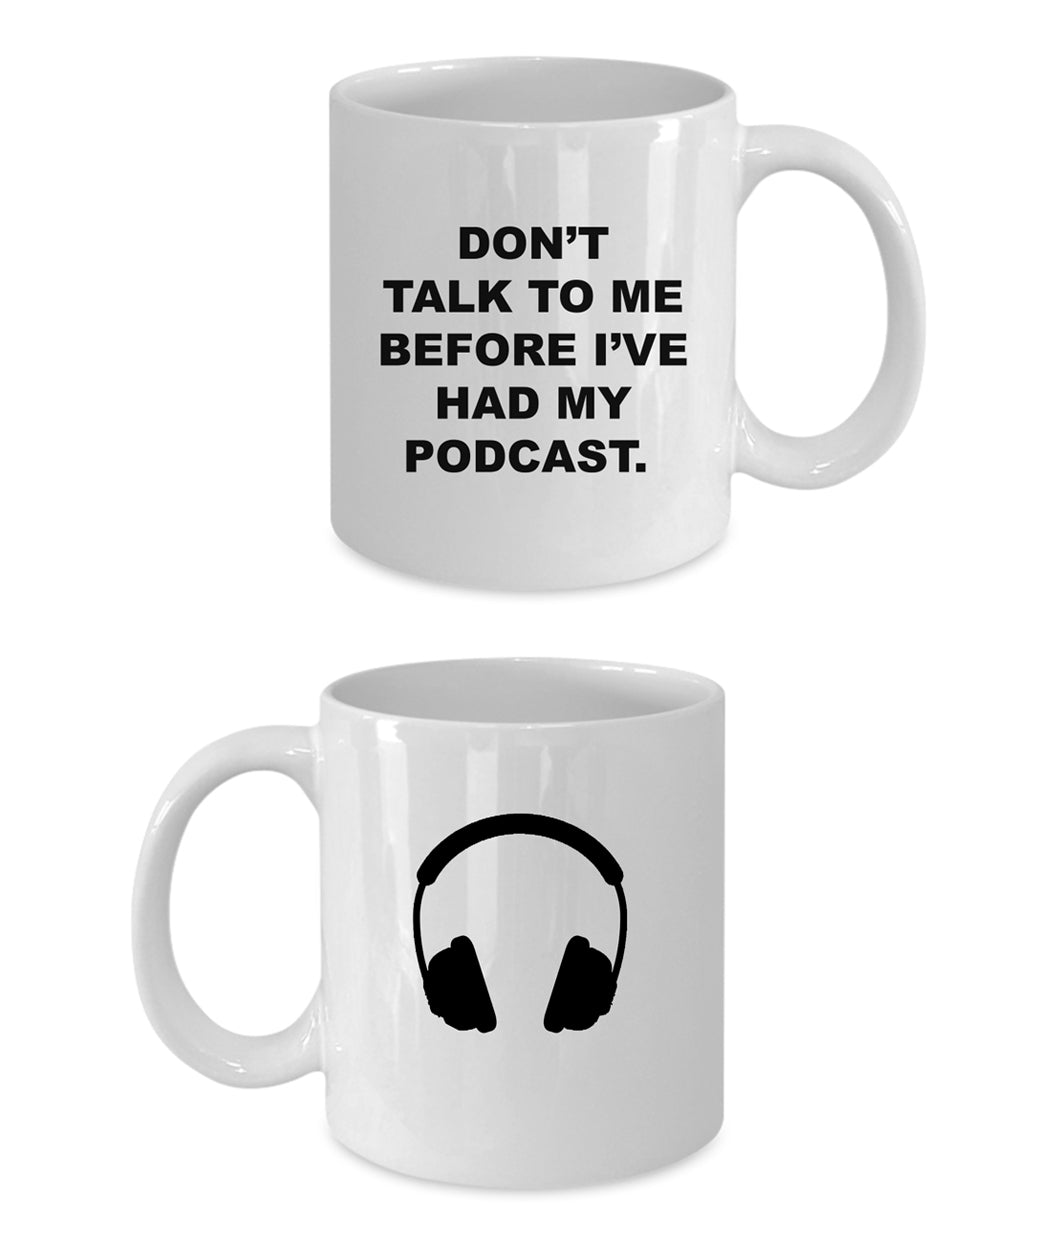 Don't Talk To Me Before I've Had My Podcast Mug